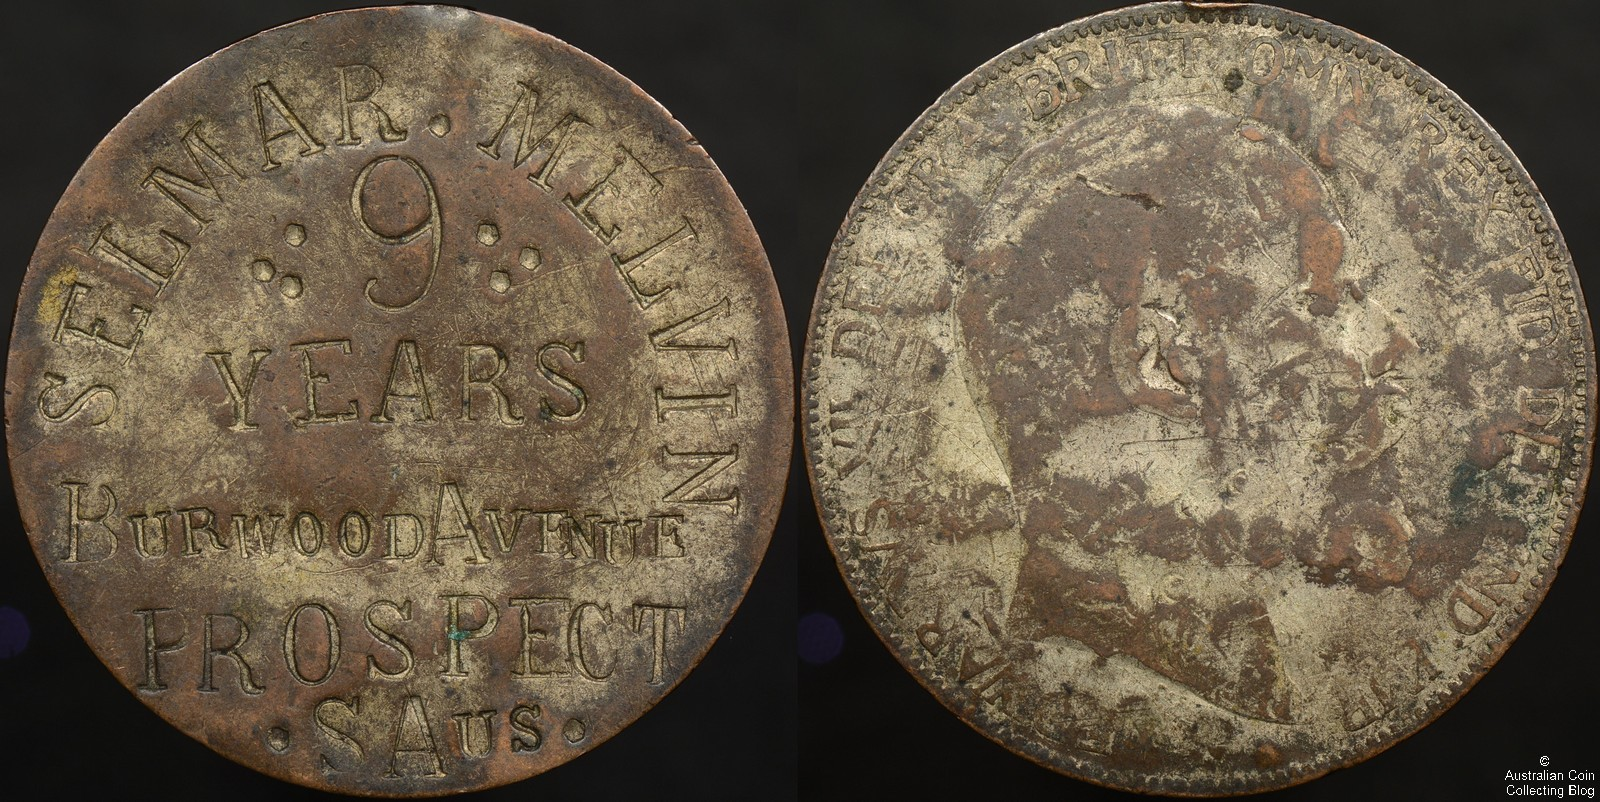 Australia Children's Token Circa 1918-1919 – SELMAR MELVIN 9 YEARS